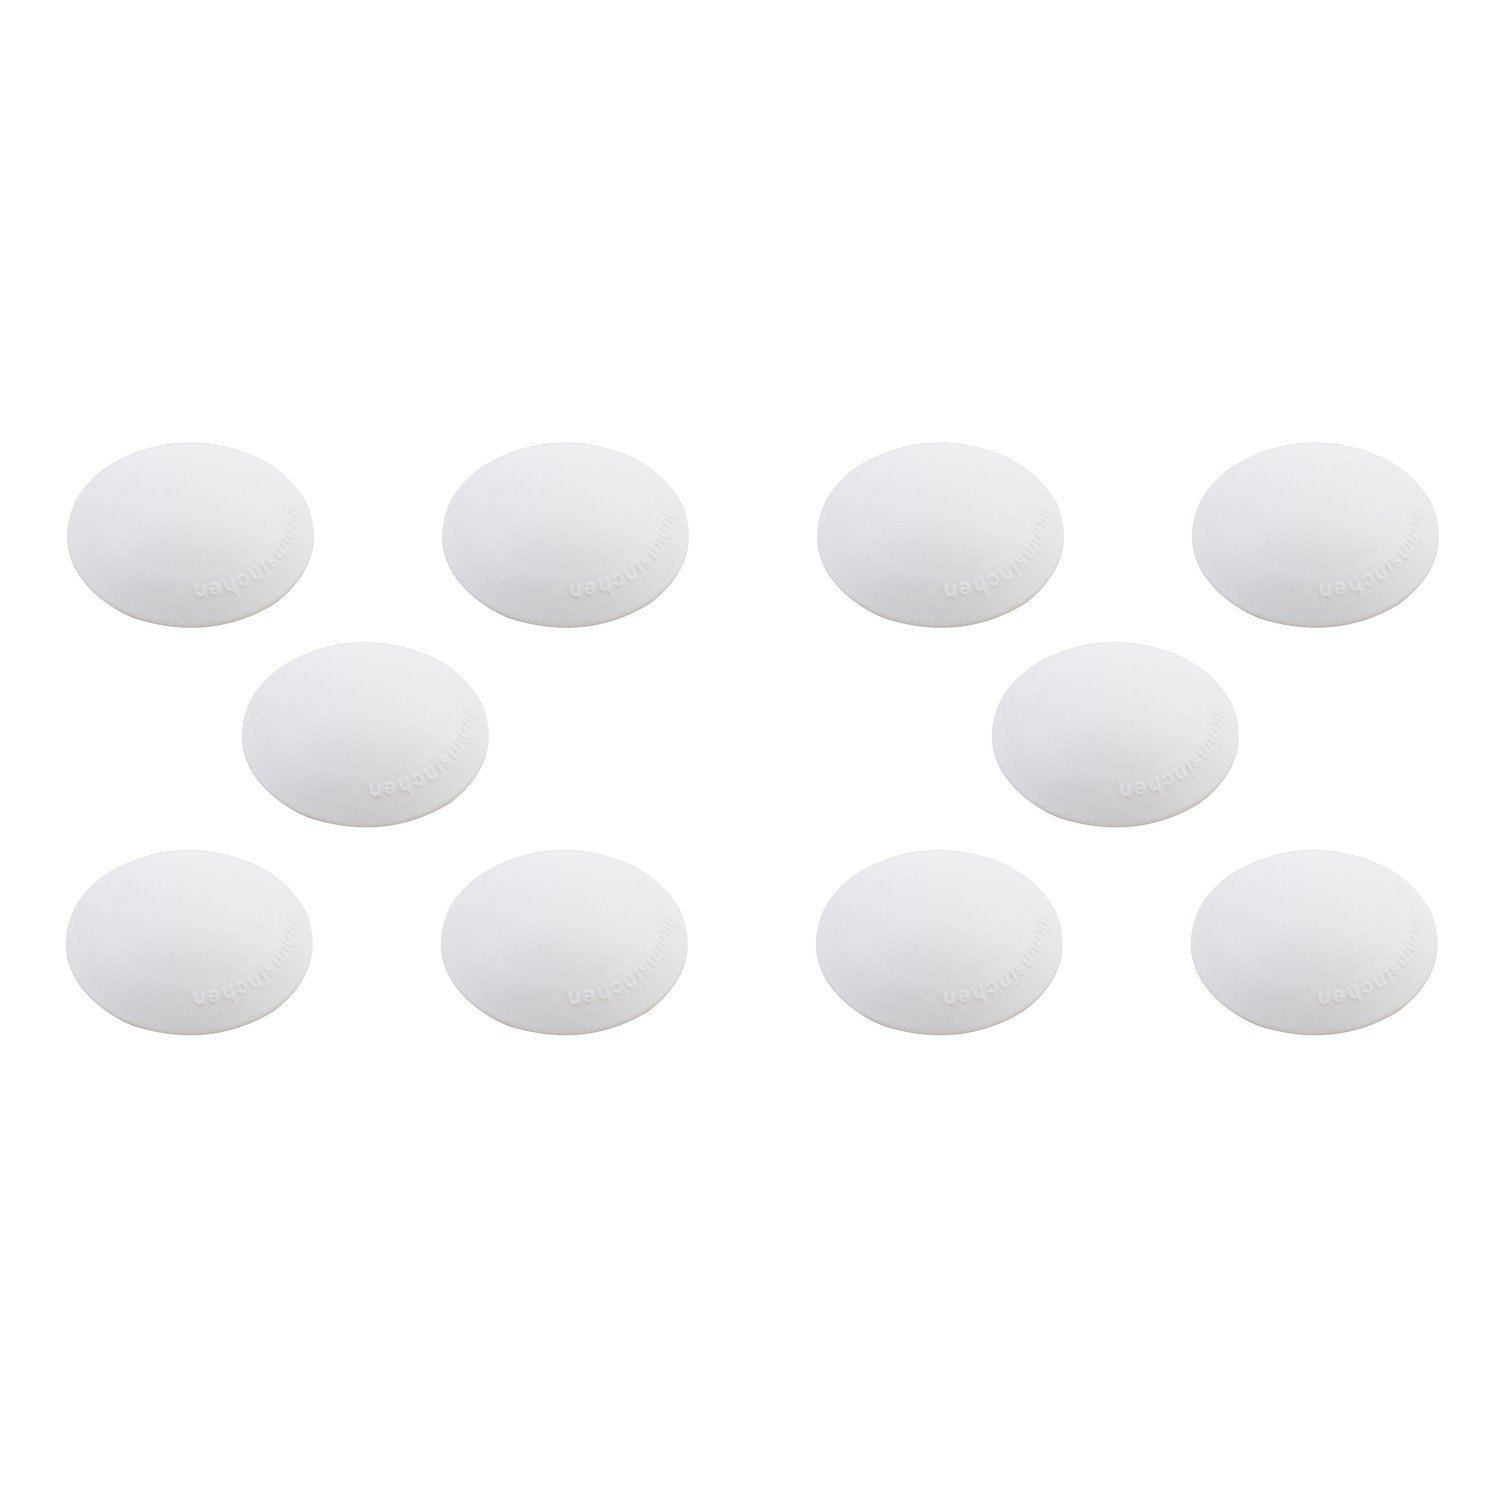 Unbekannt Hansi Home Xpert Door Buffer 10 Diameter 40 Mm Pack Of 10 X502201   White (Pack Of 4 1 - Pack